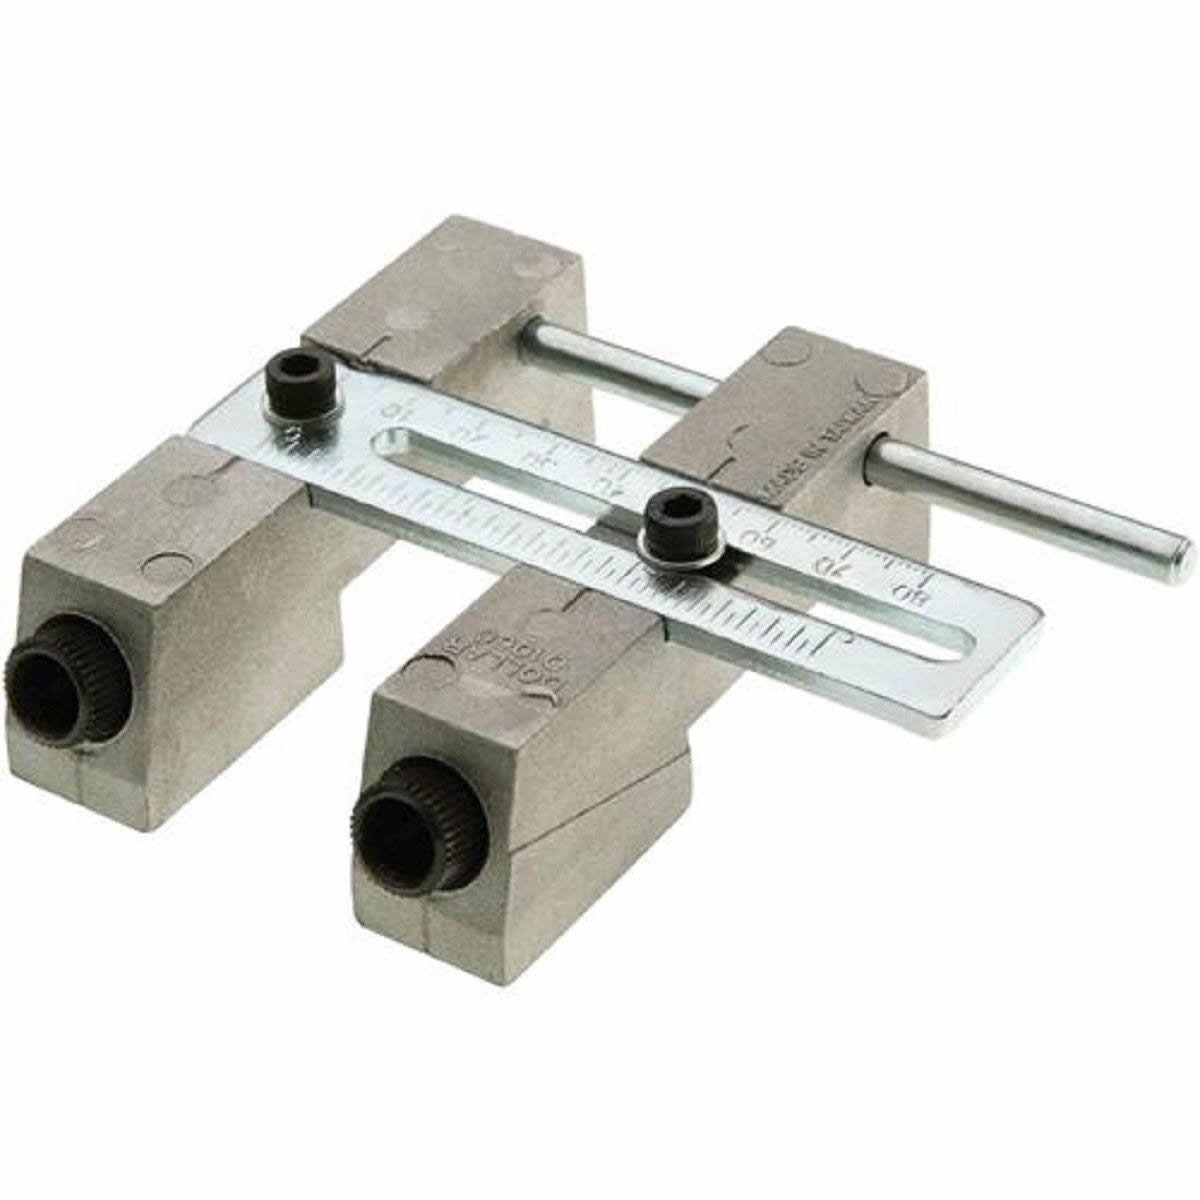 Woodworking Wood Pocket Hole Drill Guide Jig Tool Kit Poc...